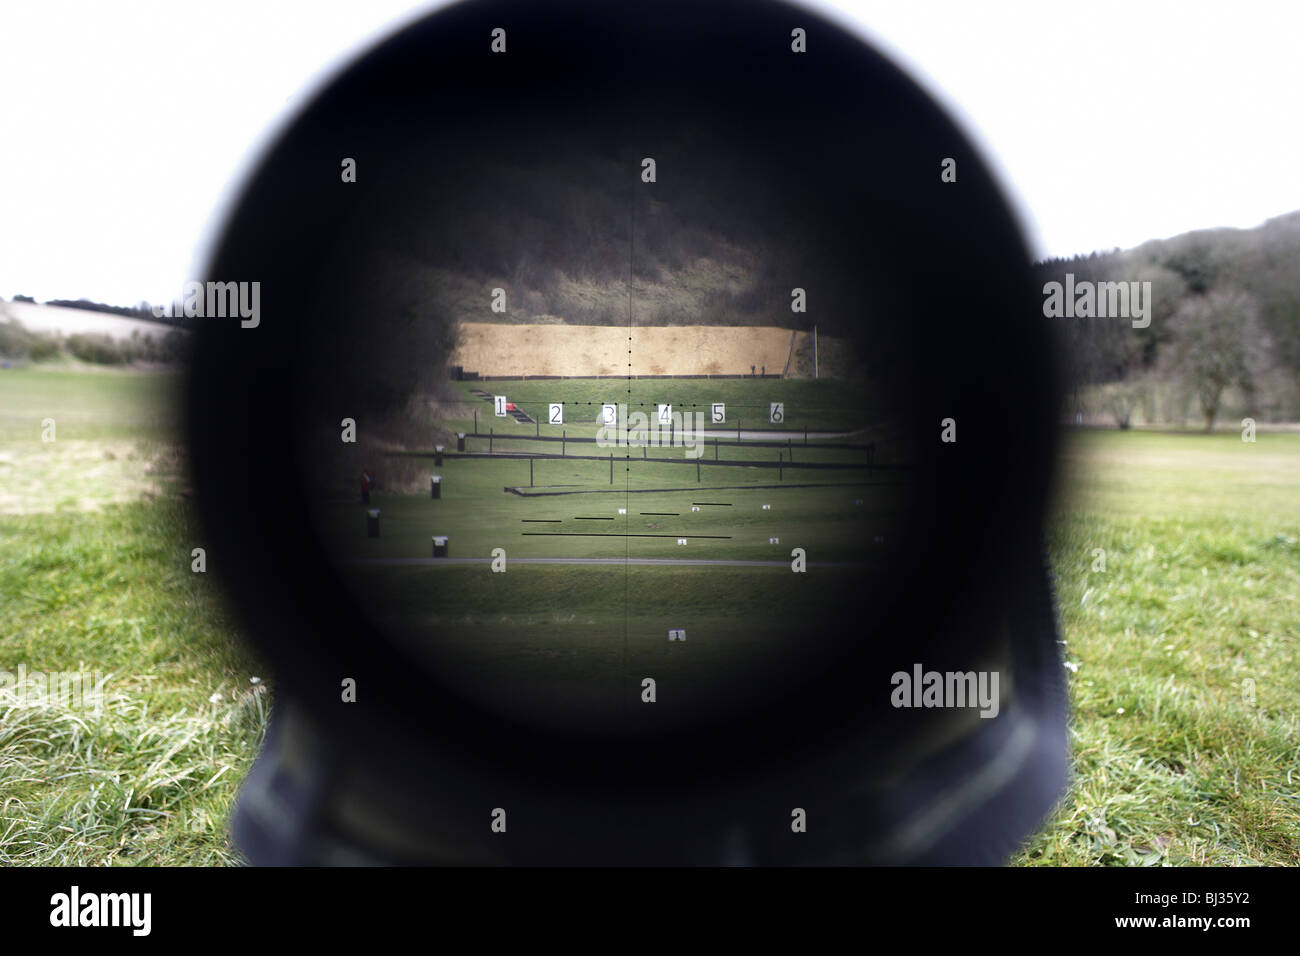 Looking down the telescopic sight of the new British-made Long Range L115A3 sniper rifle. - Stock Image